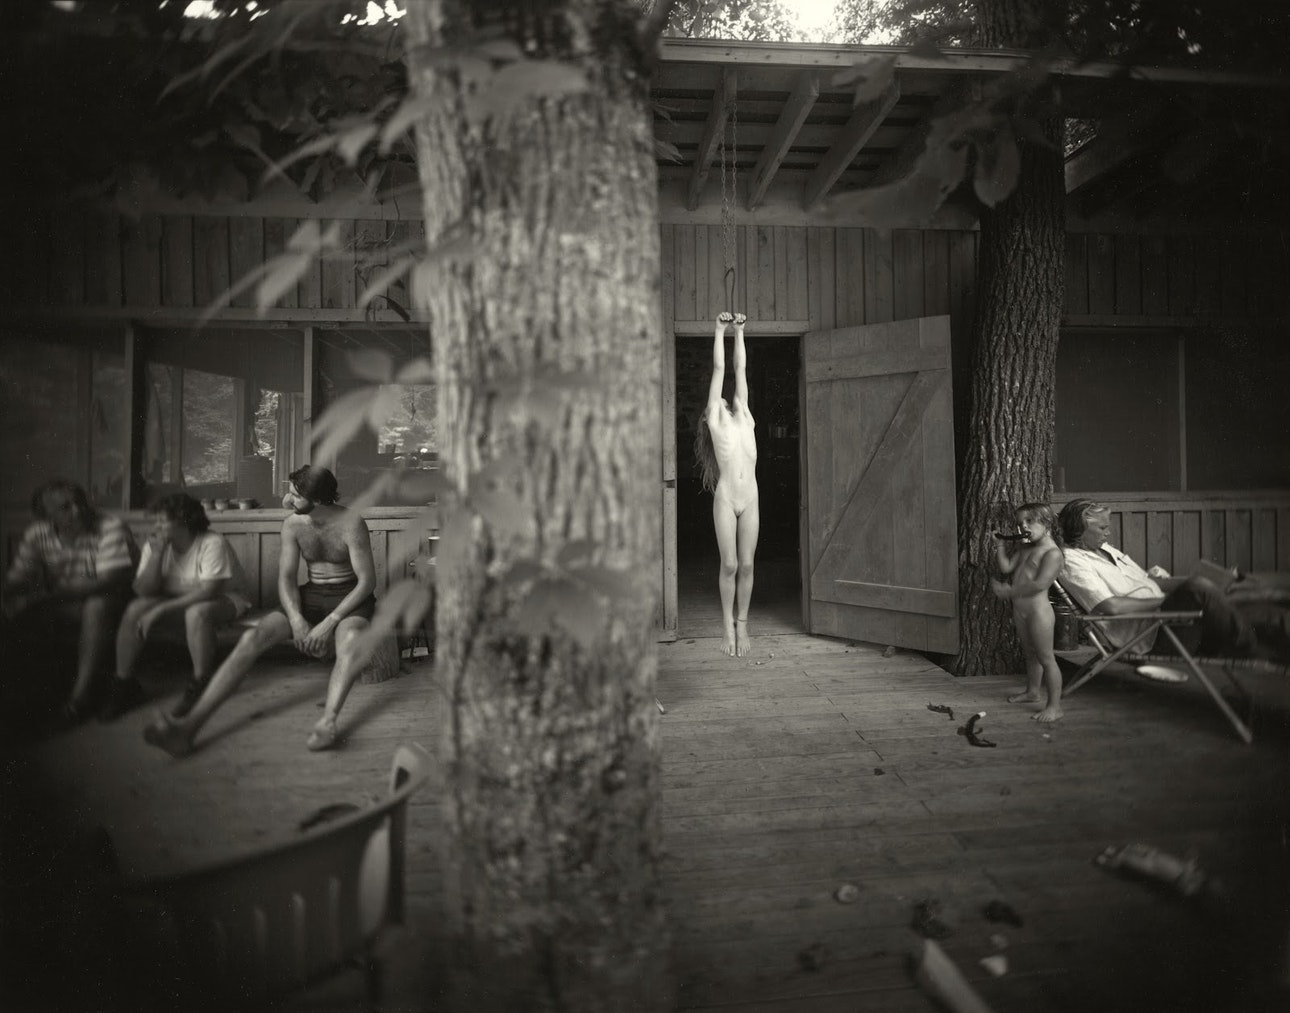 hayhook_sally_mann-_courtesy_gagosian_gallery